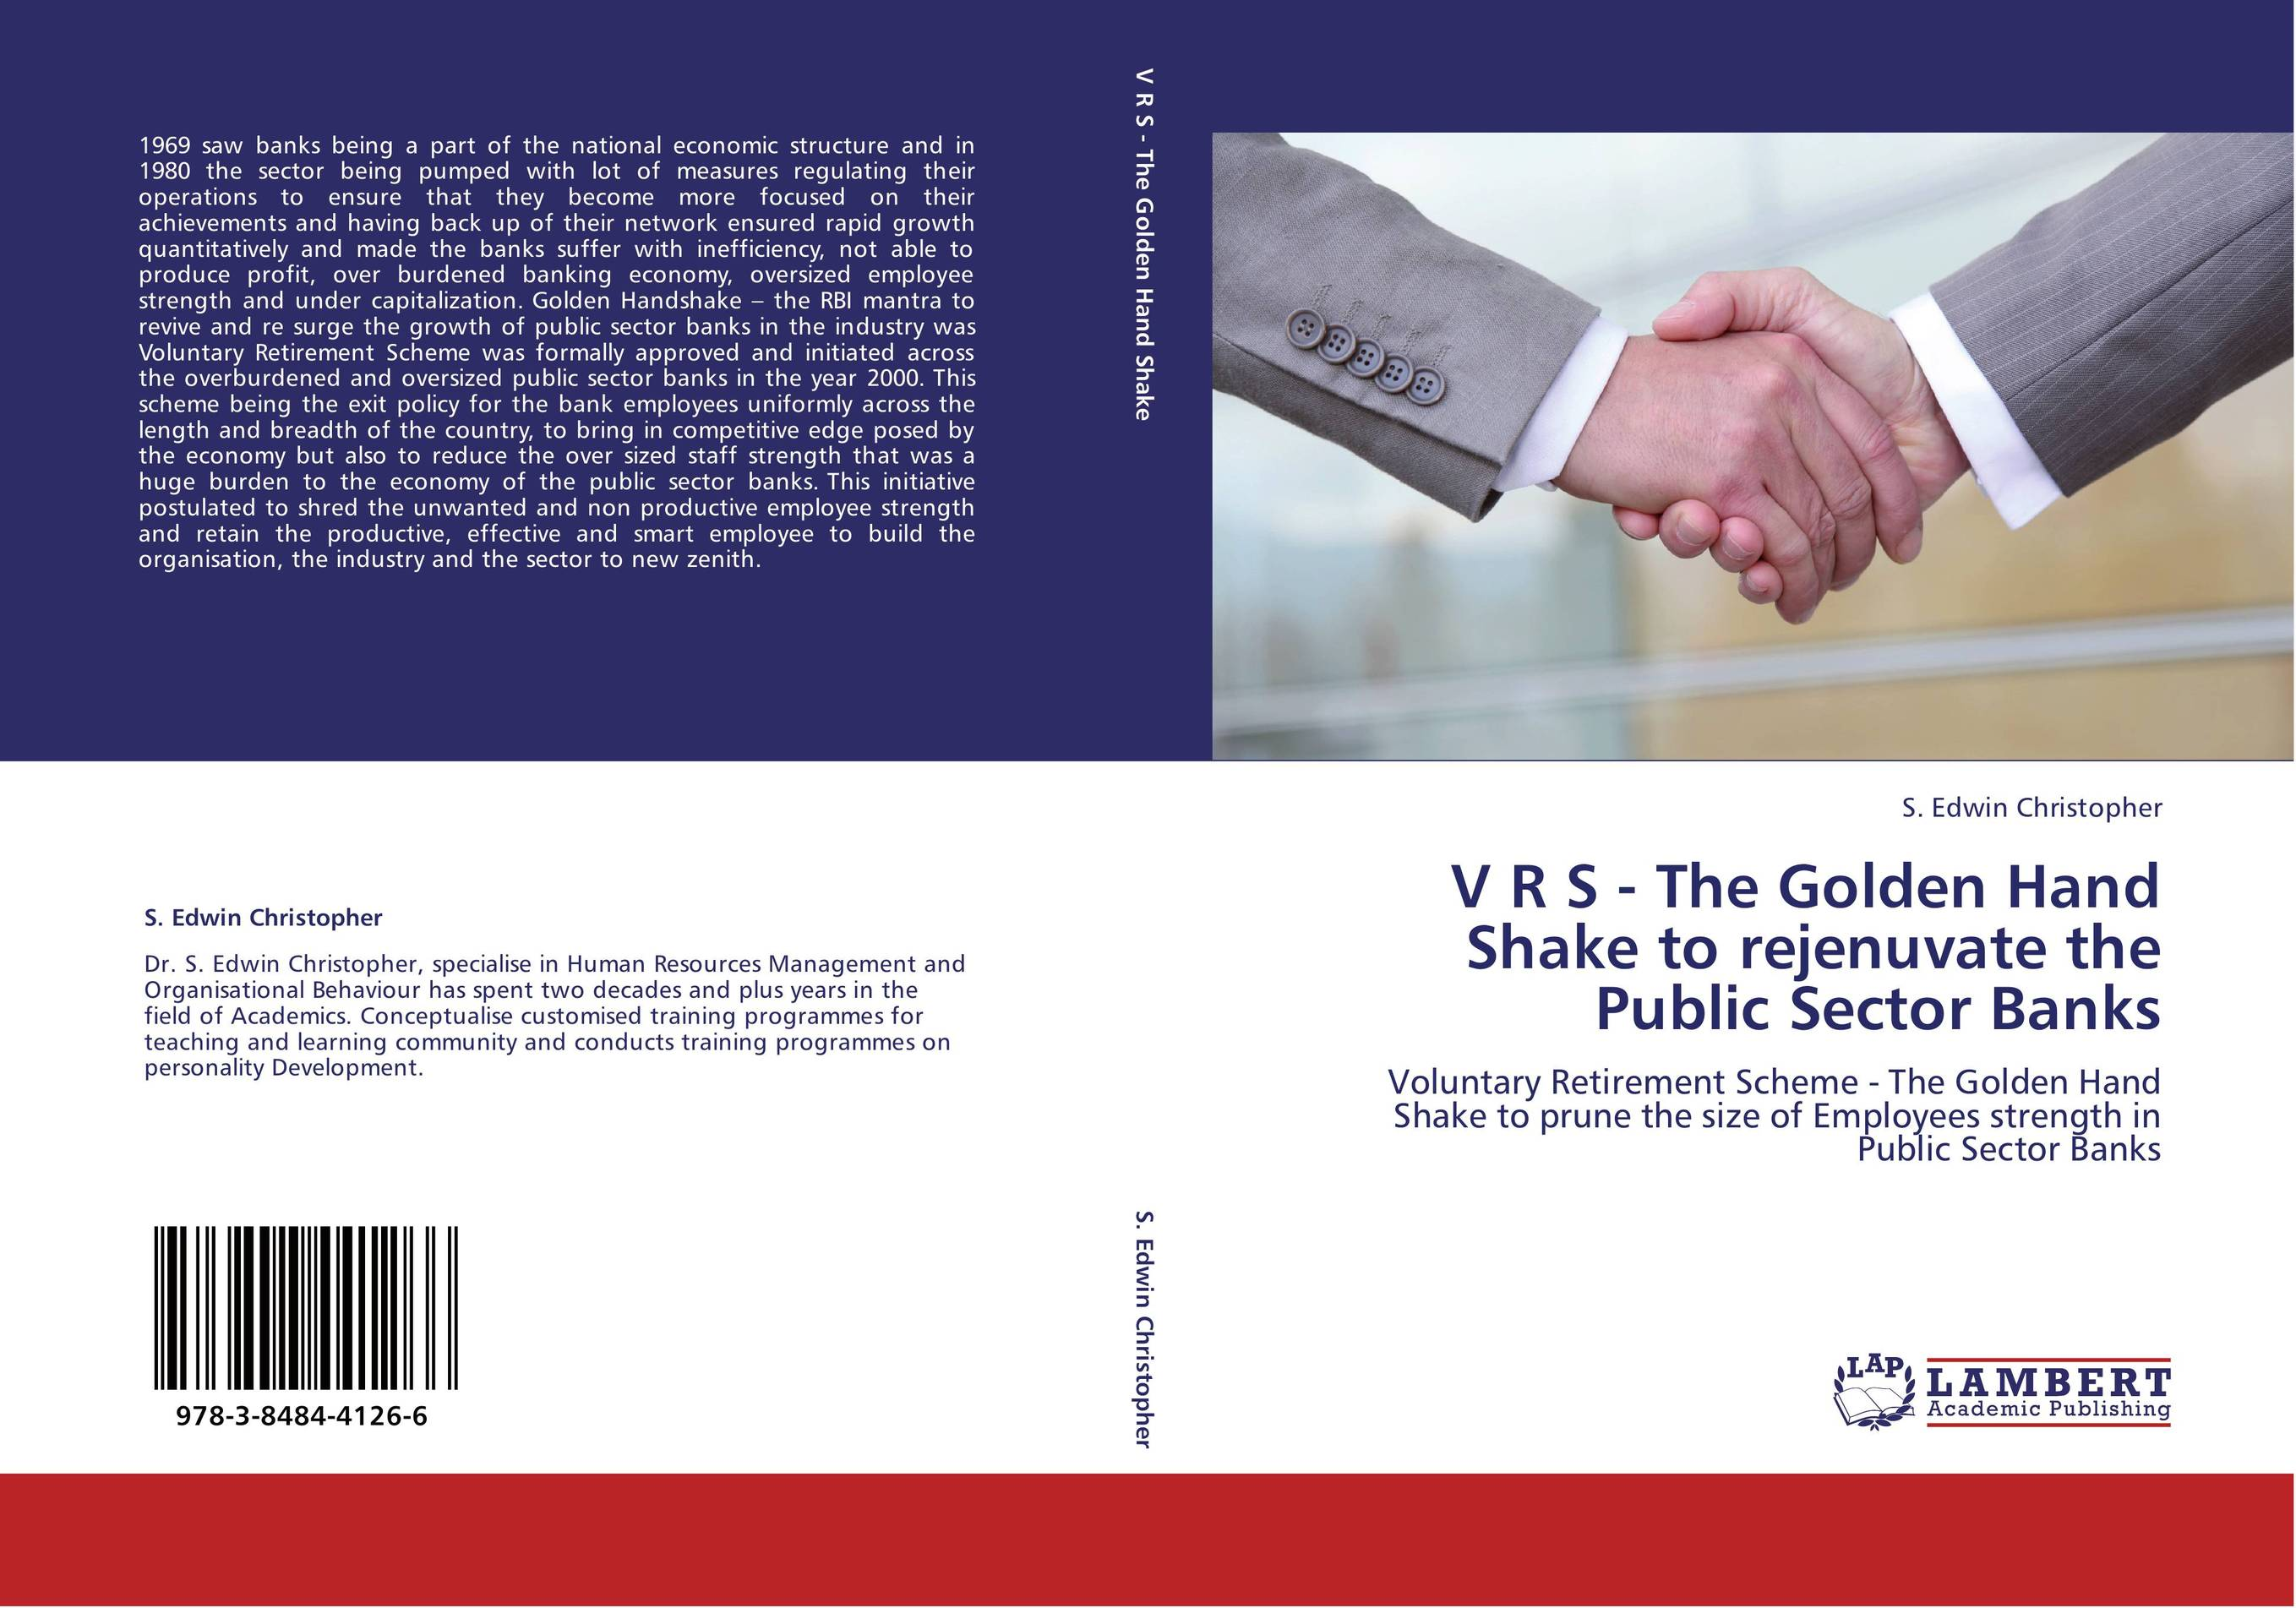 sail s voluntary retirement scheme Voluntary retirement scheme (vrs) is one of the least studied phenomena in both business and academia despite its increasing popularity, field-based scientific literature on vrs is sparse in india international literature on organizational downsizing has focused on three issues: the impact on those who have lost their jobs the impact on those remaining and on how to downsize effectively.